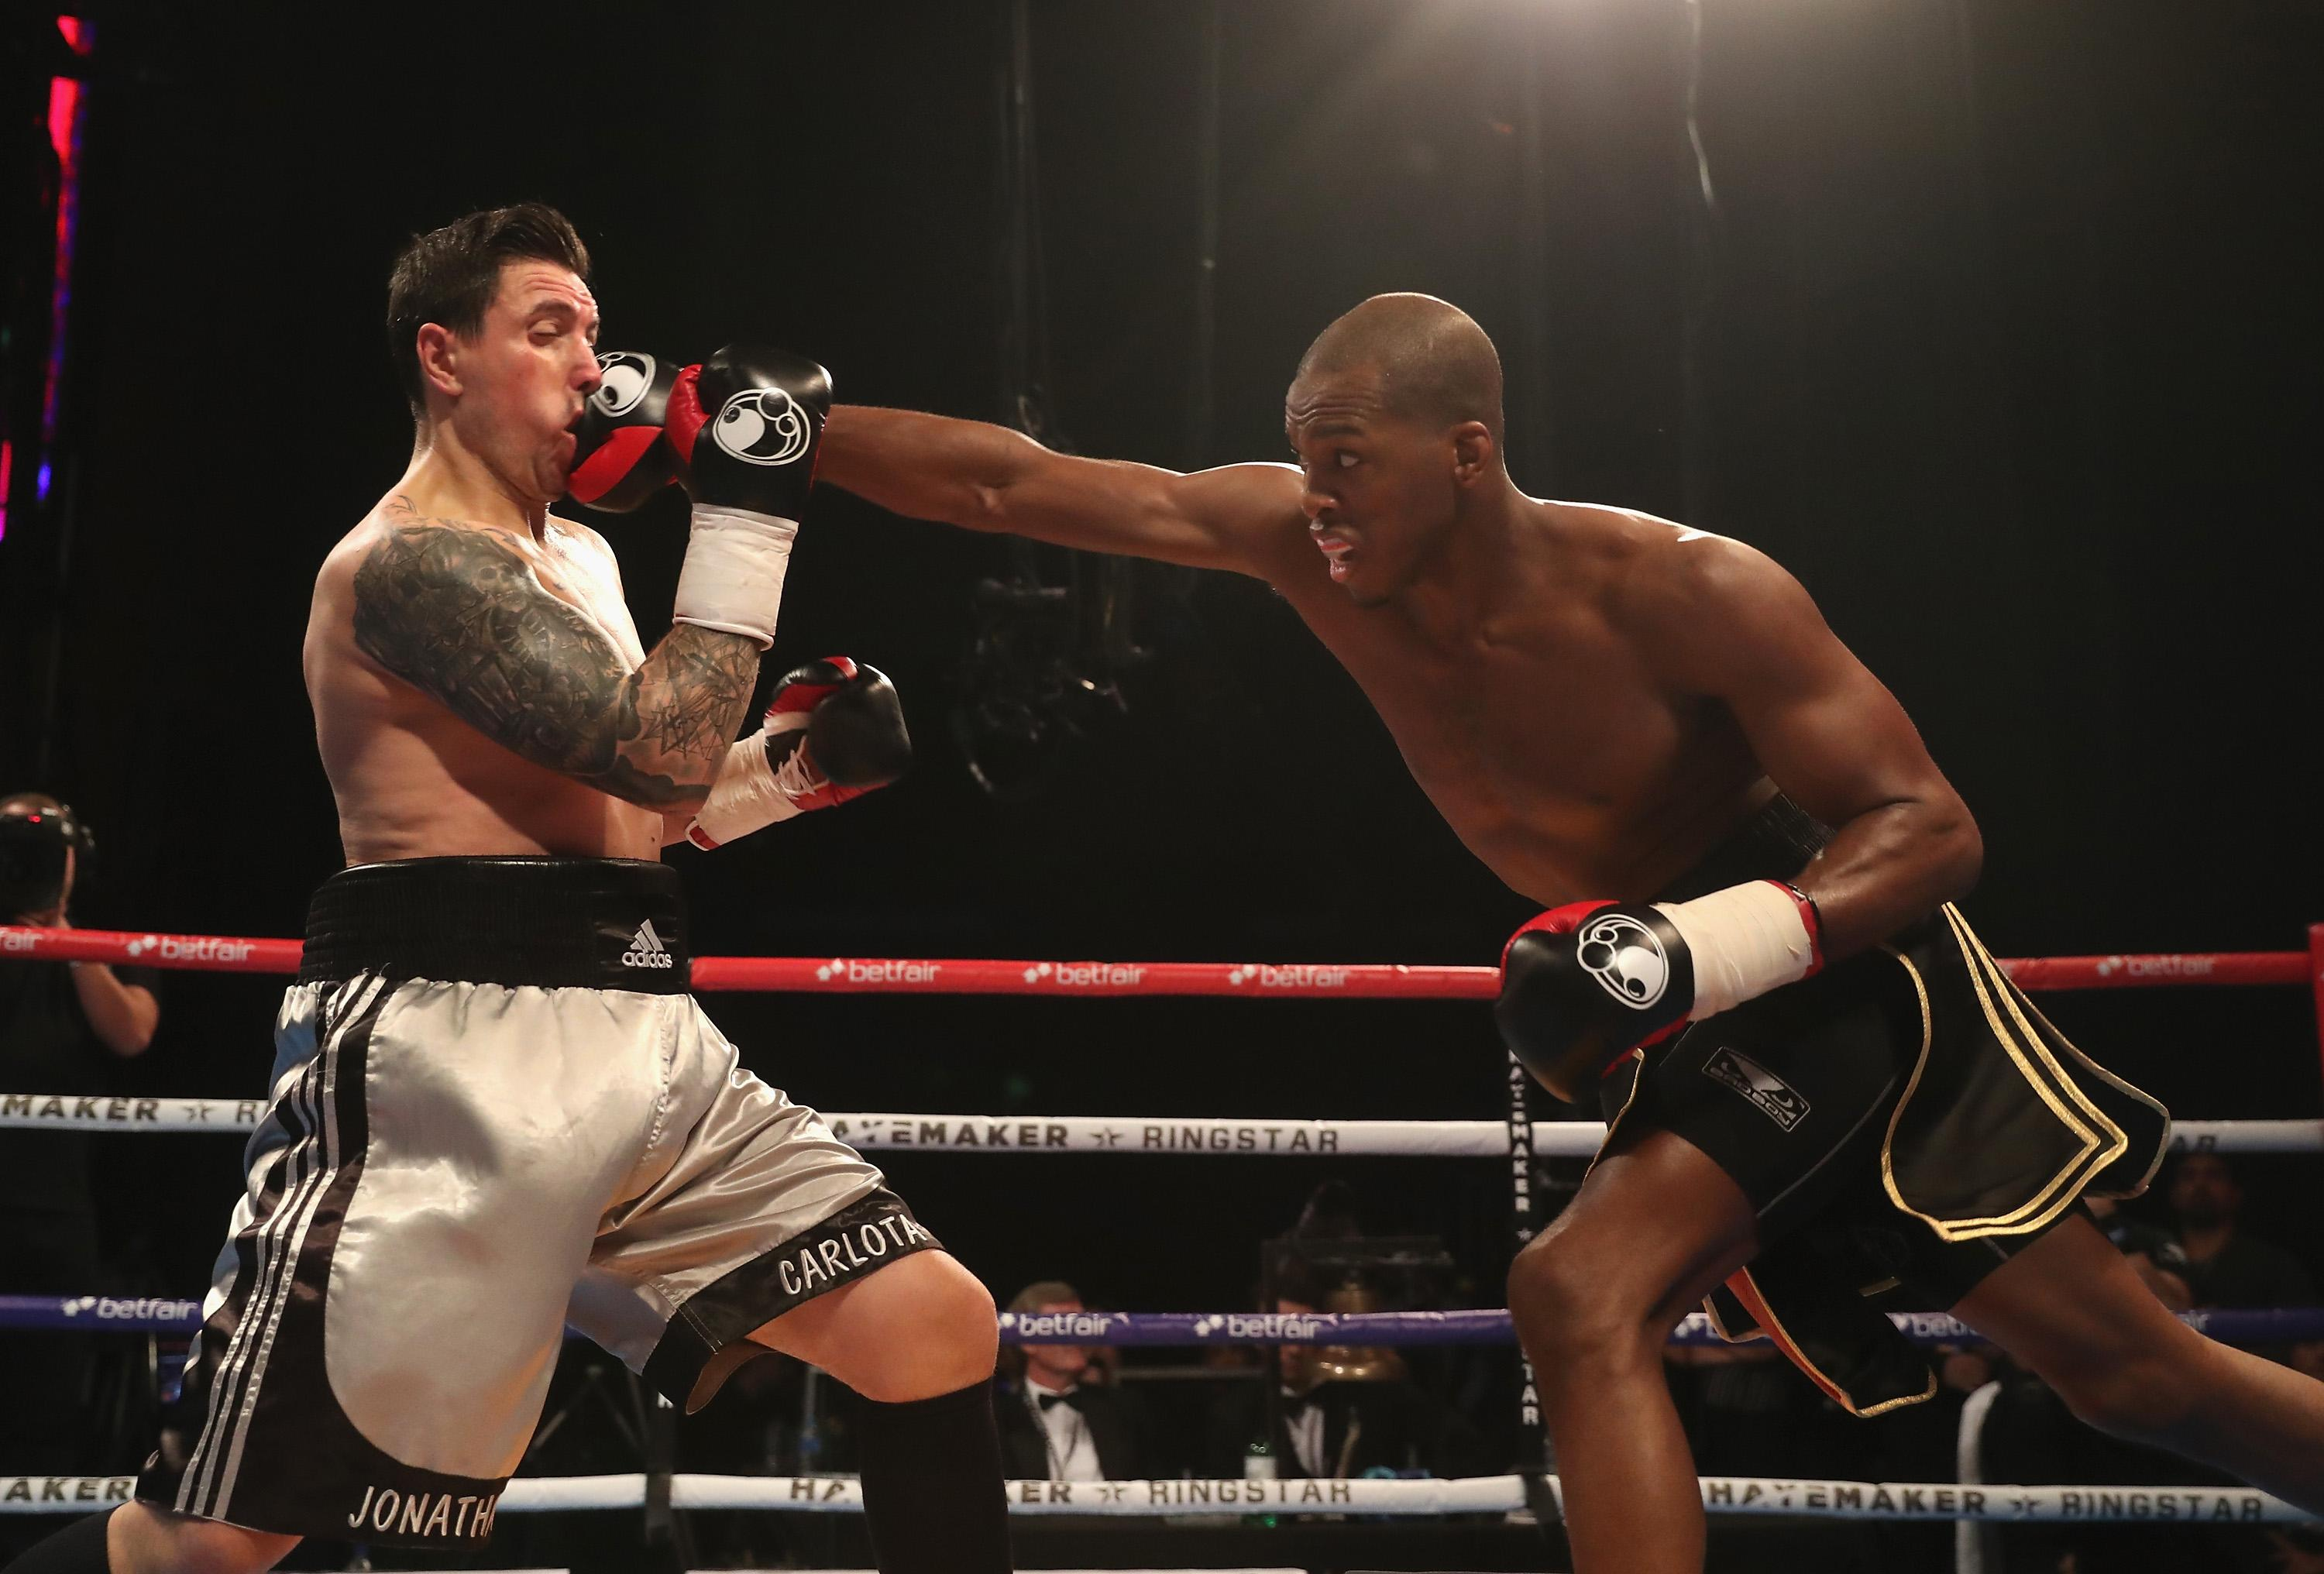 Boxing and MMA cross-over star Michael 'Venom' Page is part of the show